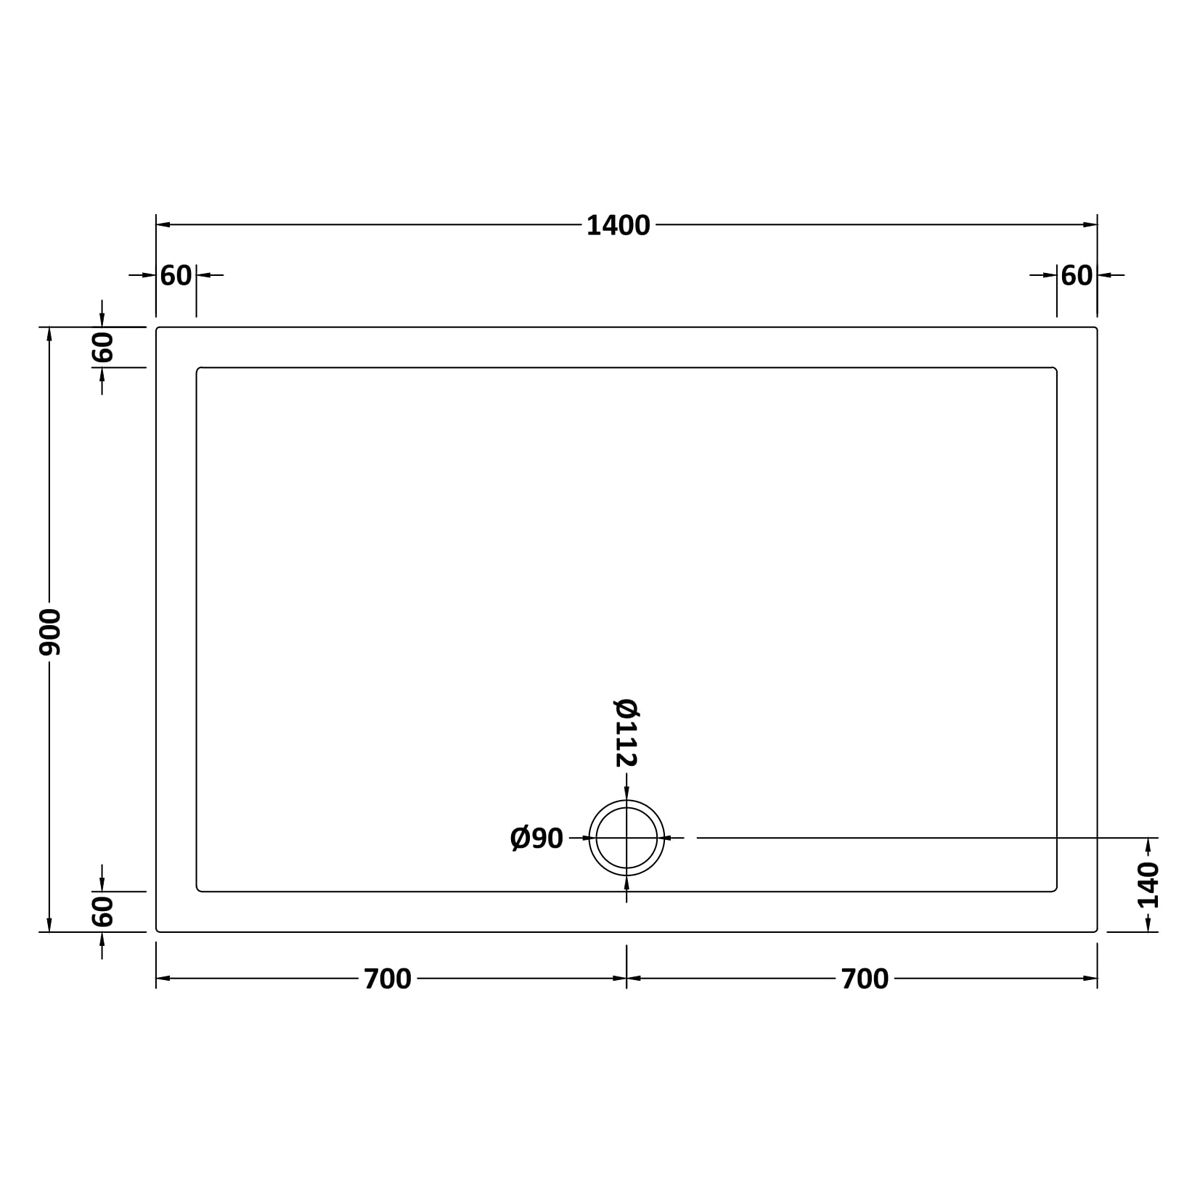 1400 x 900 Shower Tray Slate Grey Rectangular Low Profile by Pearlstone Dimensions